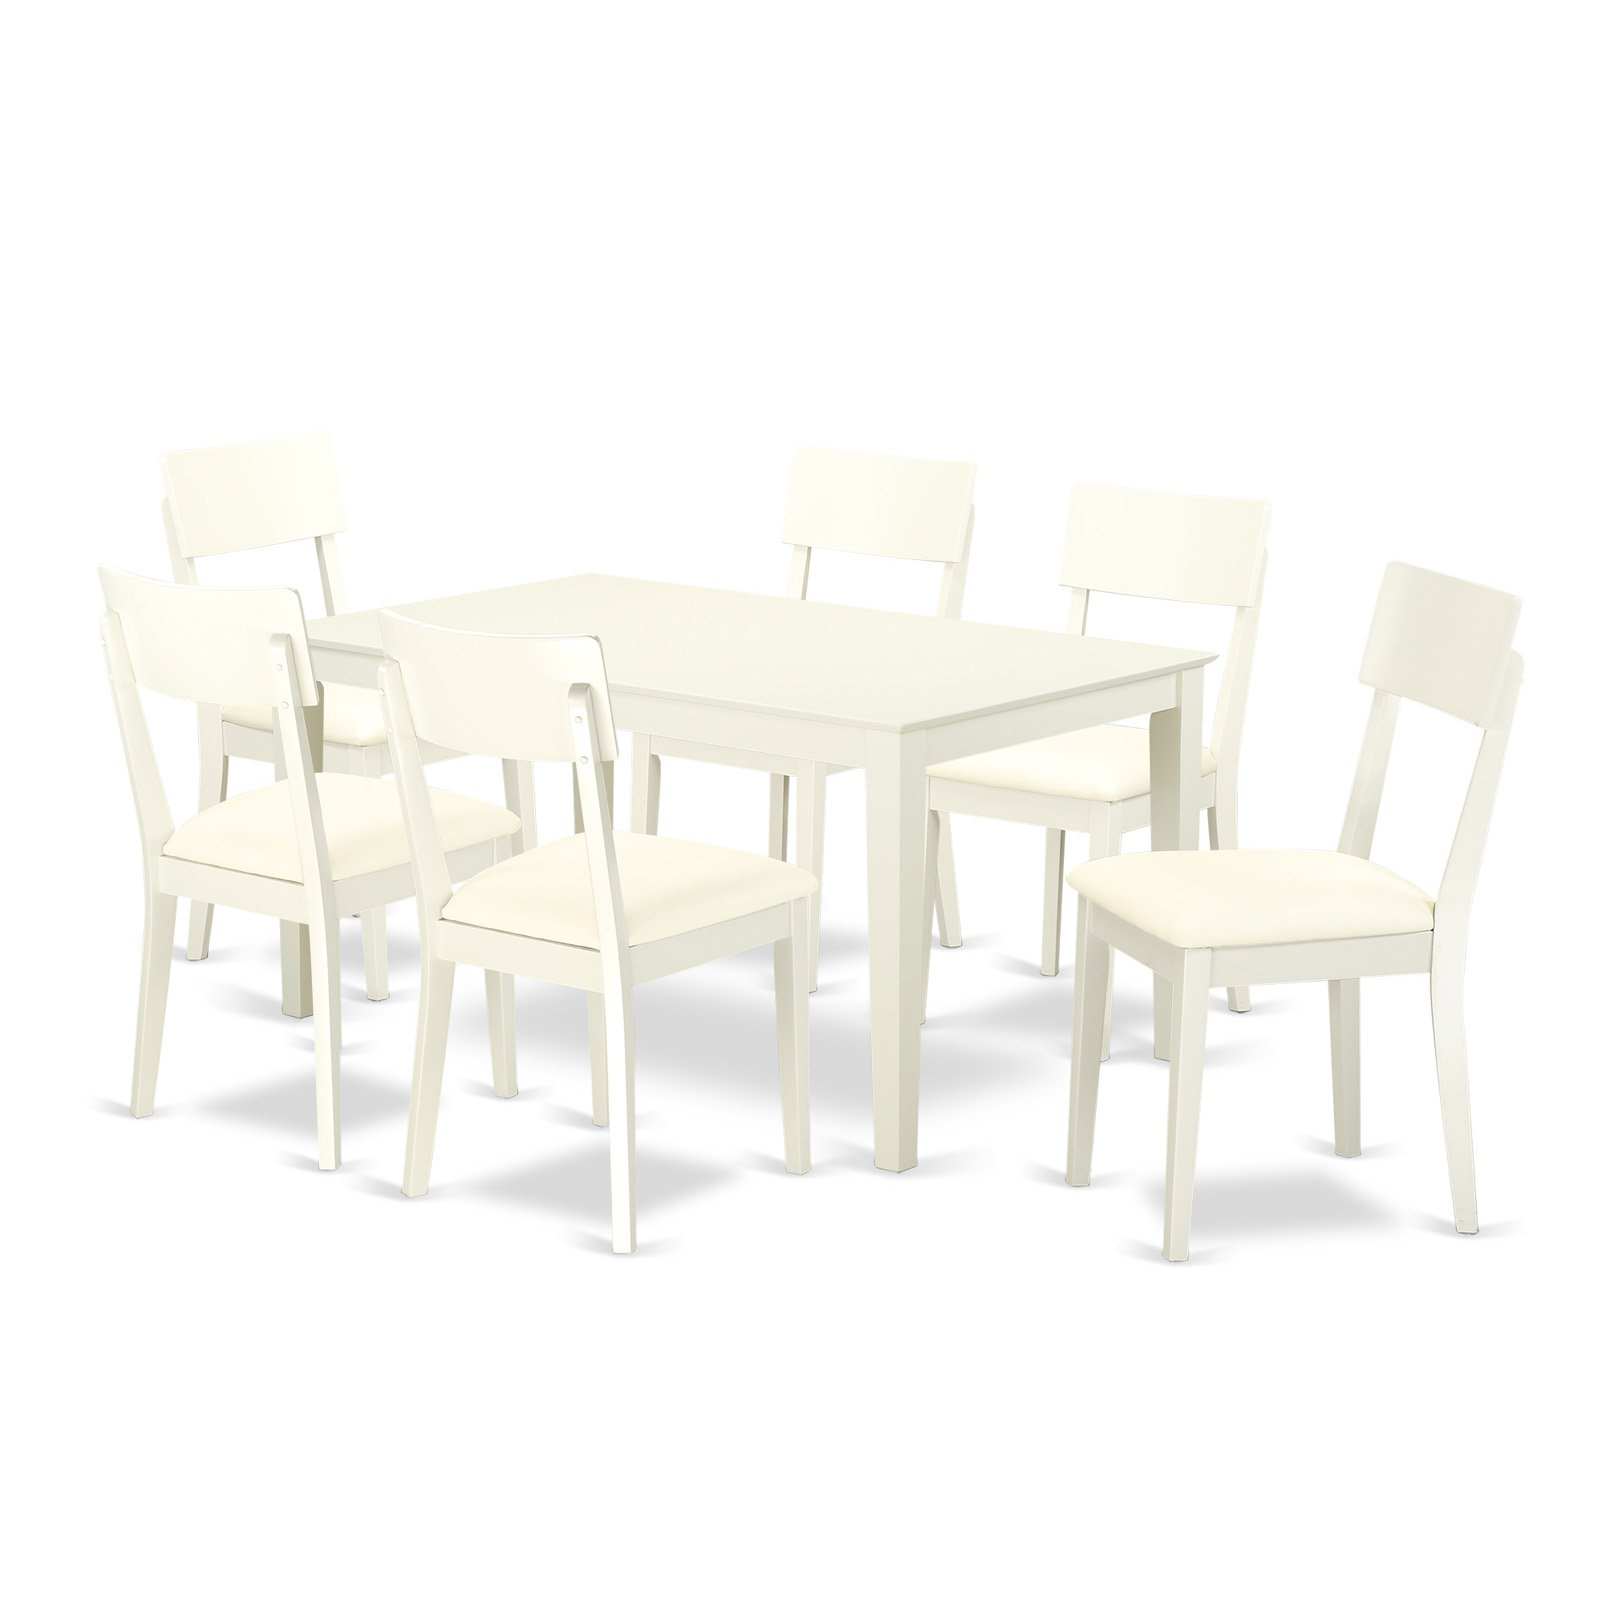 Smyrna 3 Piece Dining Sets For Well Known East West Furniture Capri Caad7 Seven Piece Dining Table Set (View 15 of 20)